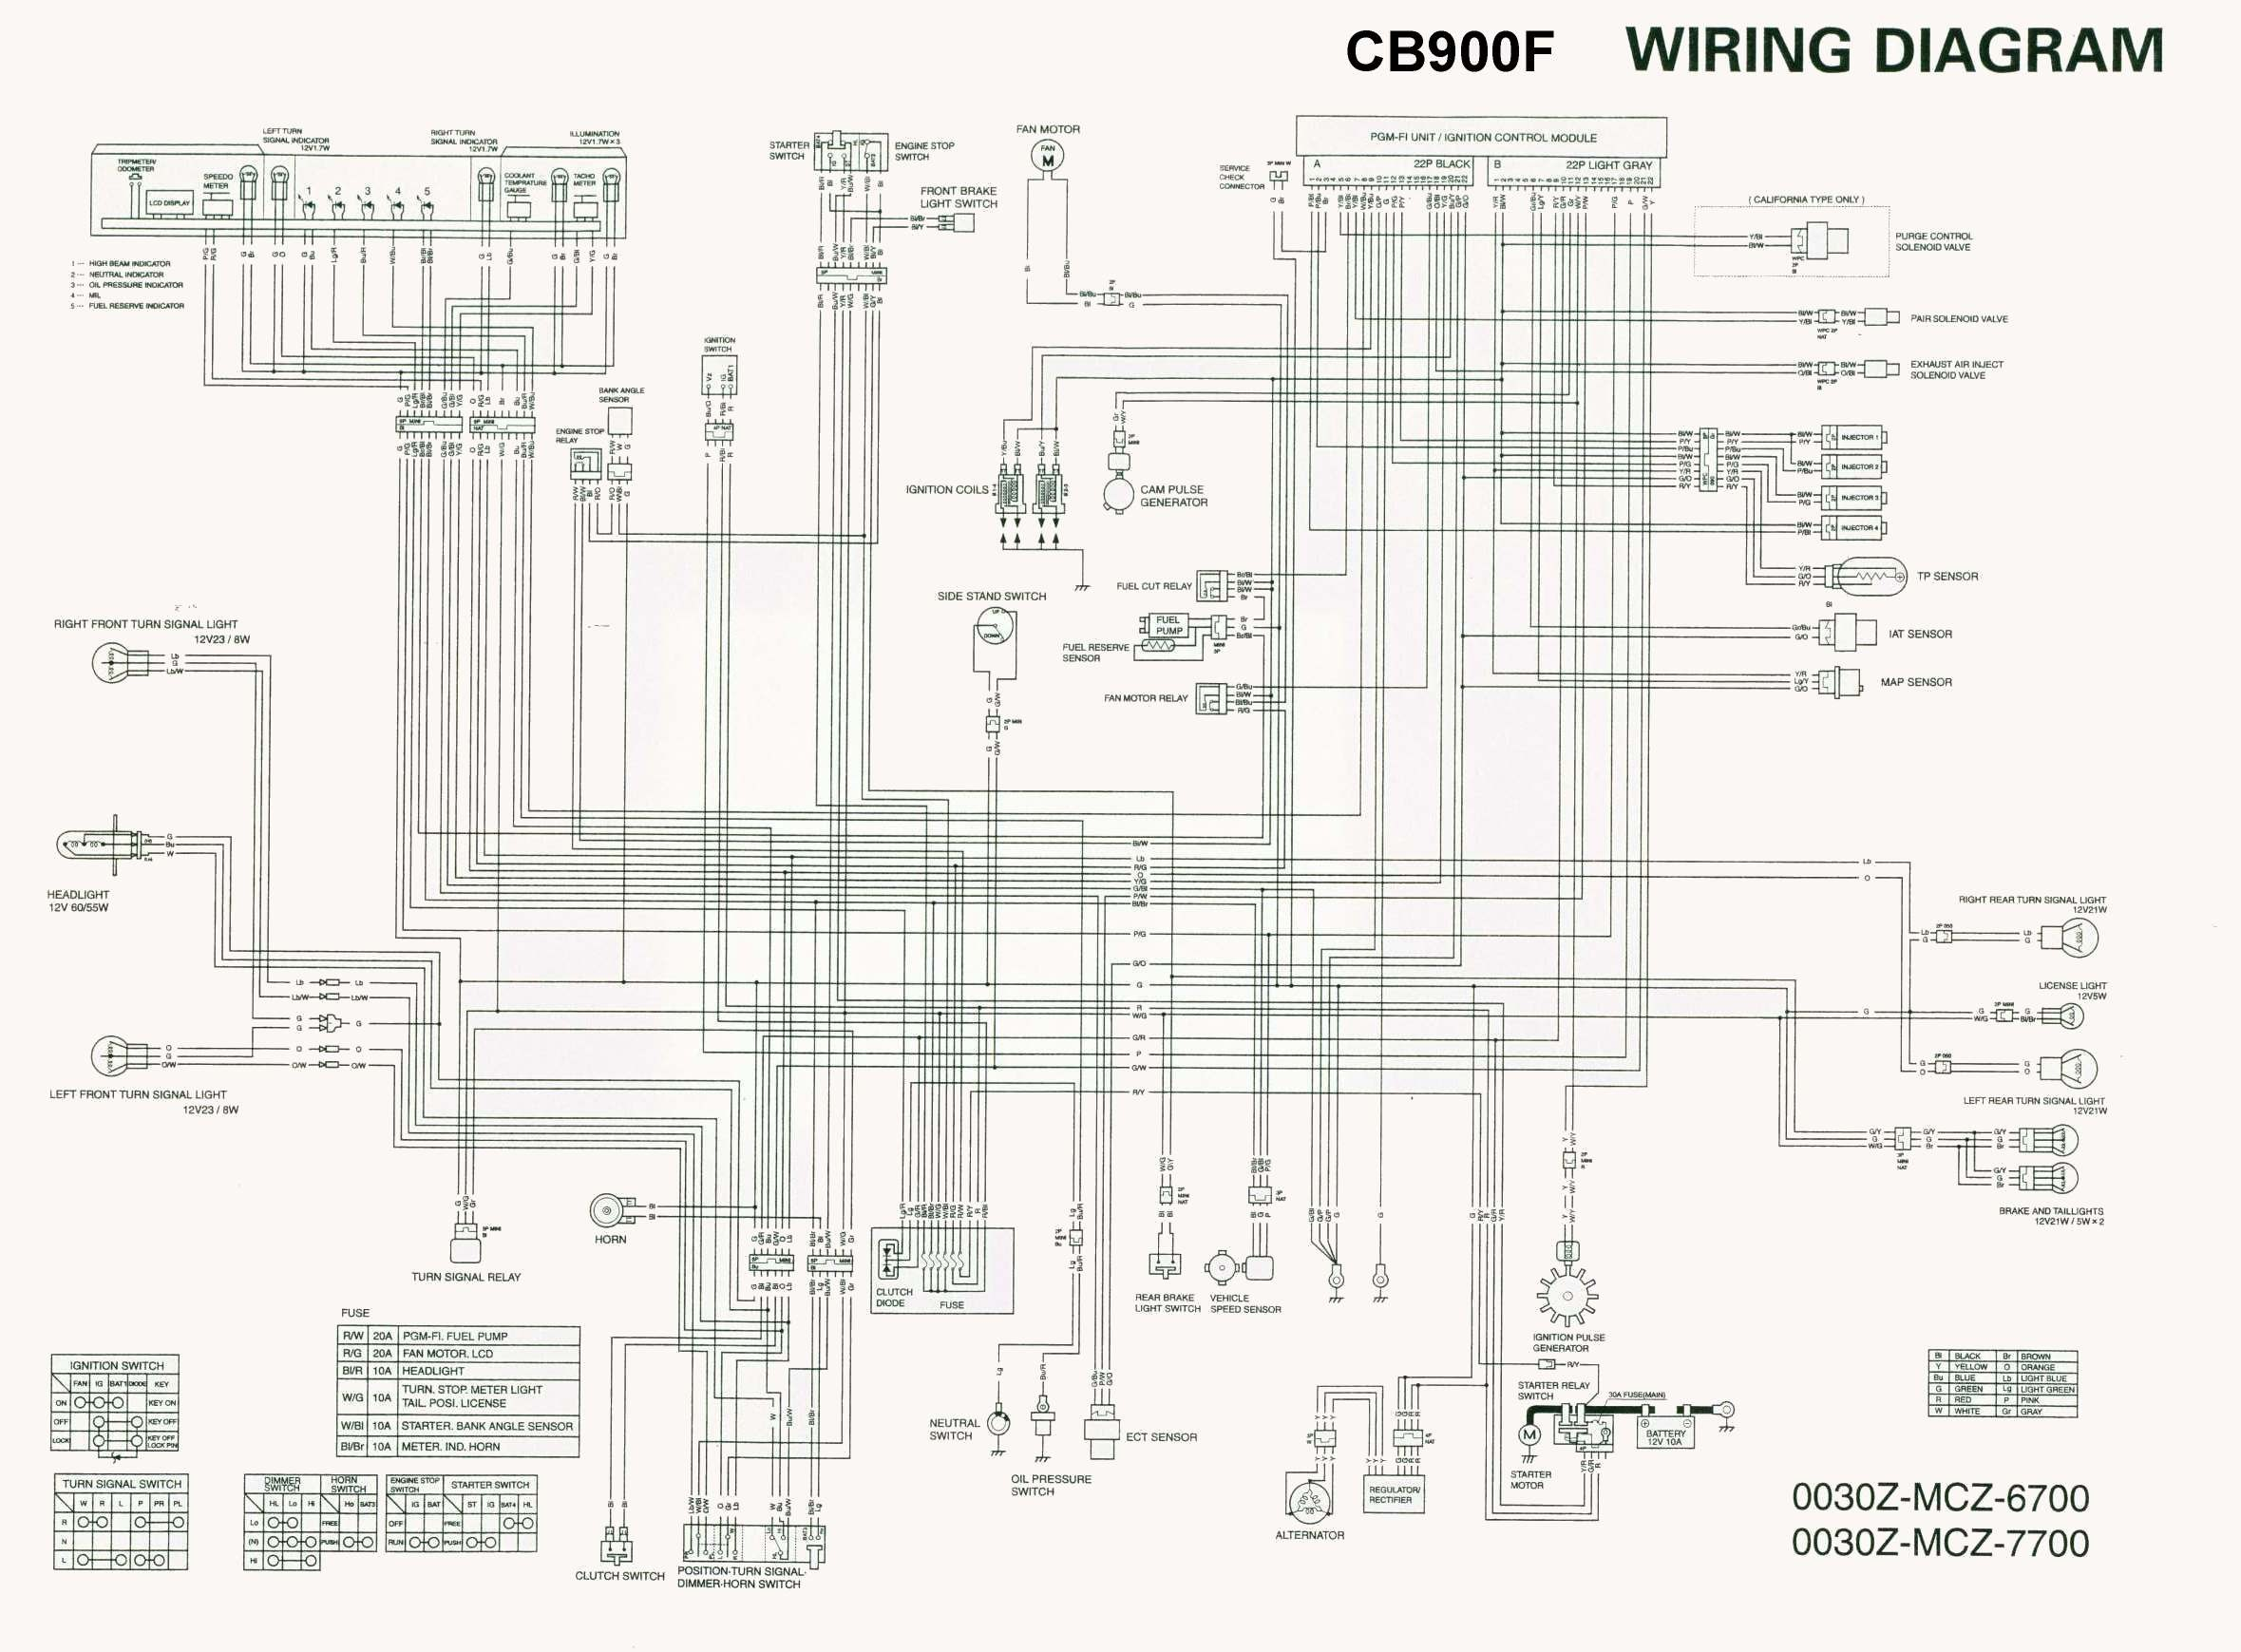 Honda Wiring Diagrams 1995 Odyssey Data Cb 900 Diagram Instructions Of